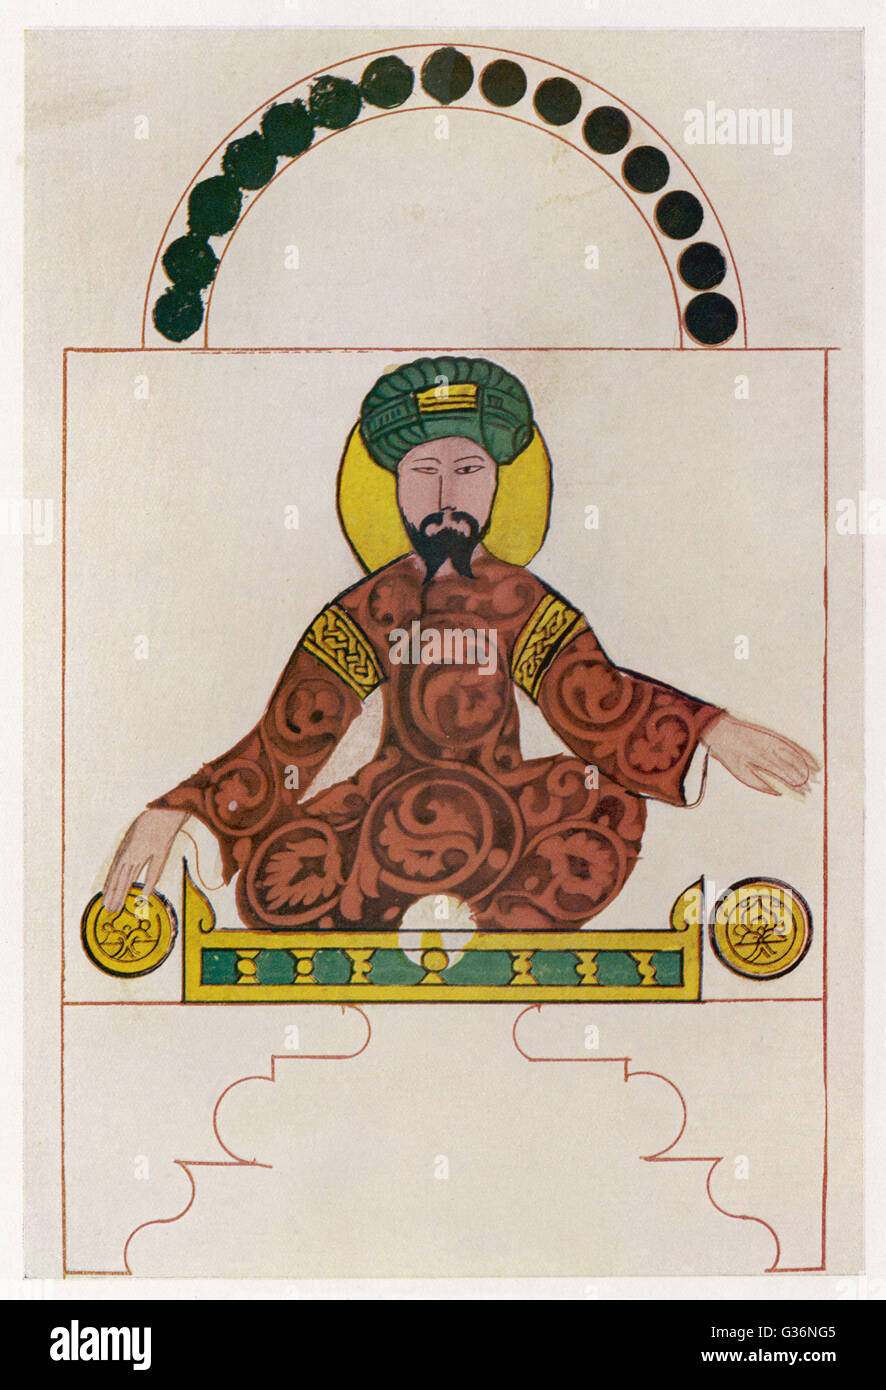 Salah Ad-Din Yusuf Ibn Ayyub(1138-1193) , known as Saladin, Muslim Sultan of Egypt and Syria (reigned 1174-1193). - Stock Image